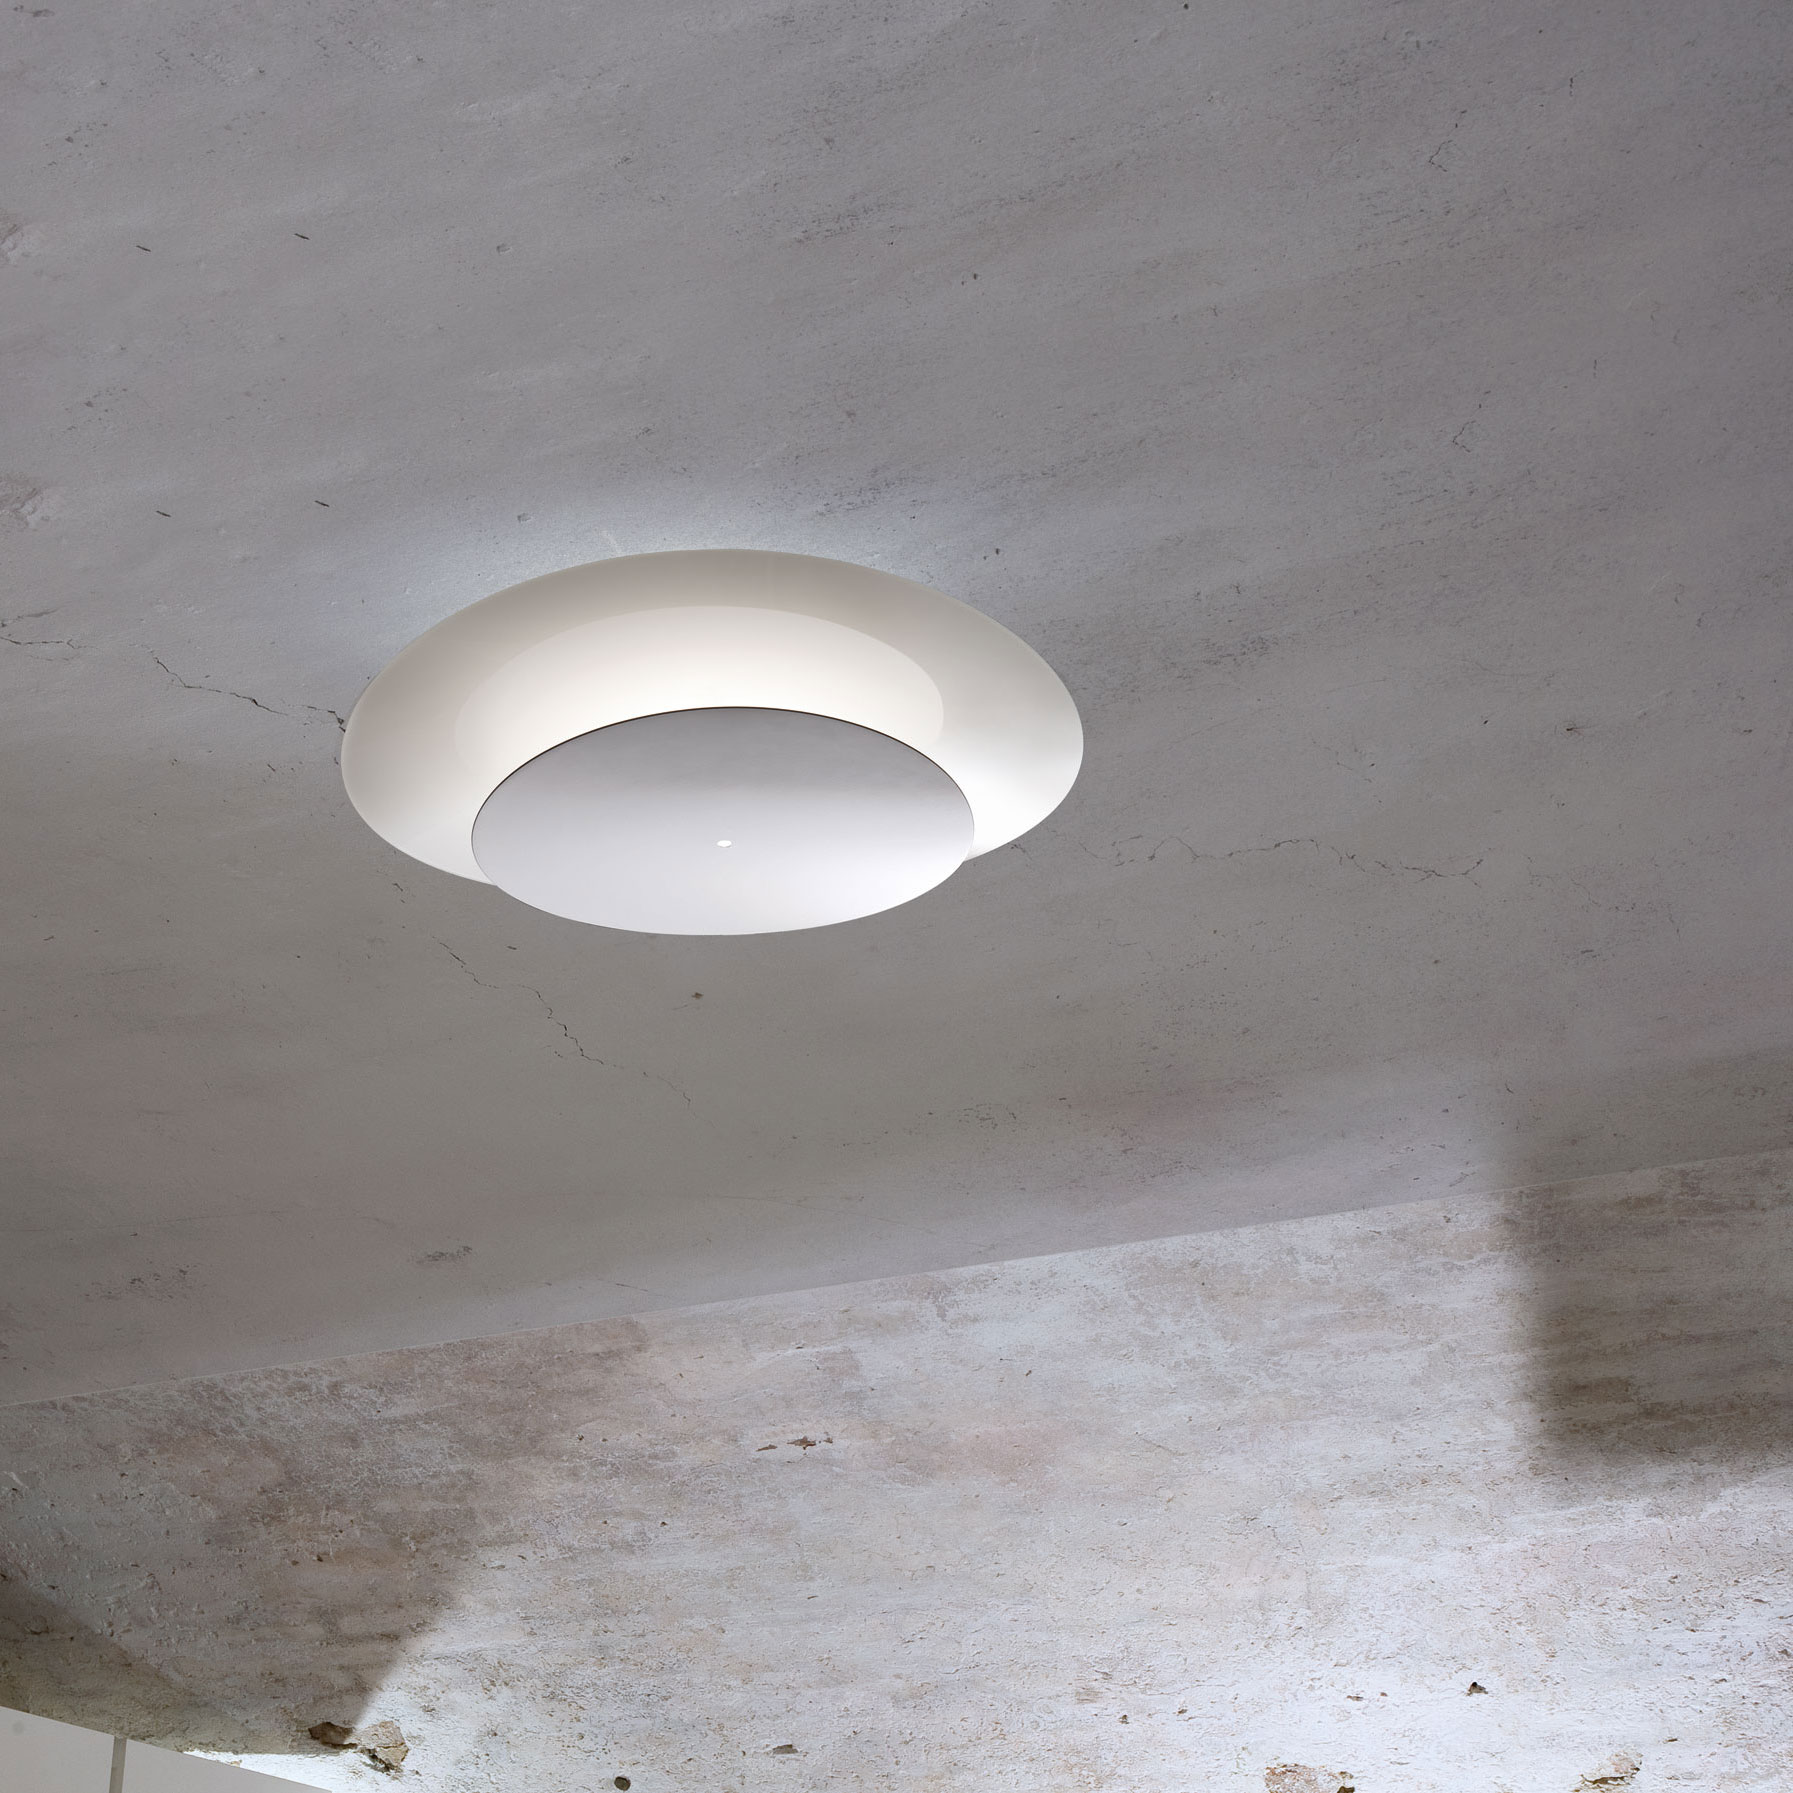 Plana Flush Ceiling Light By Itama By Scangift Plpla45